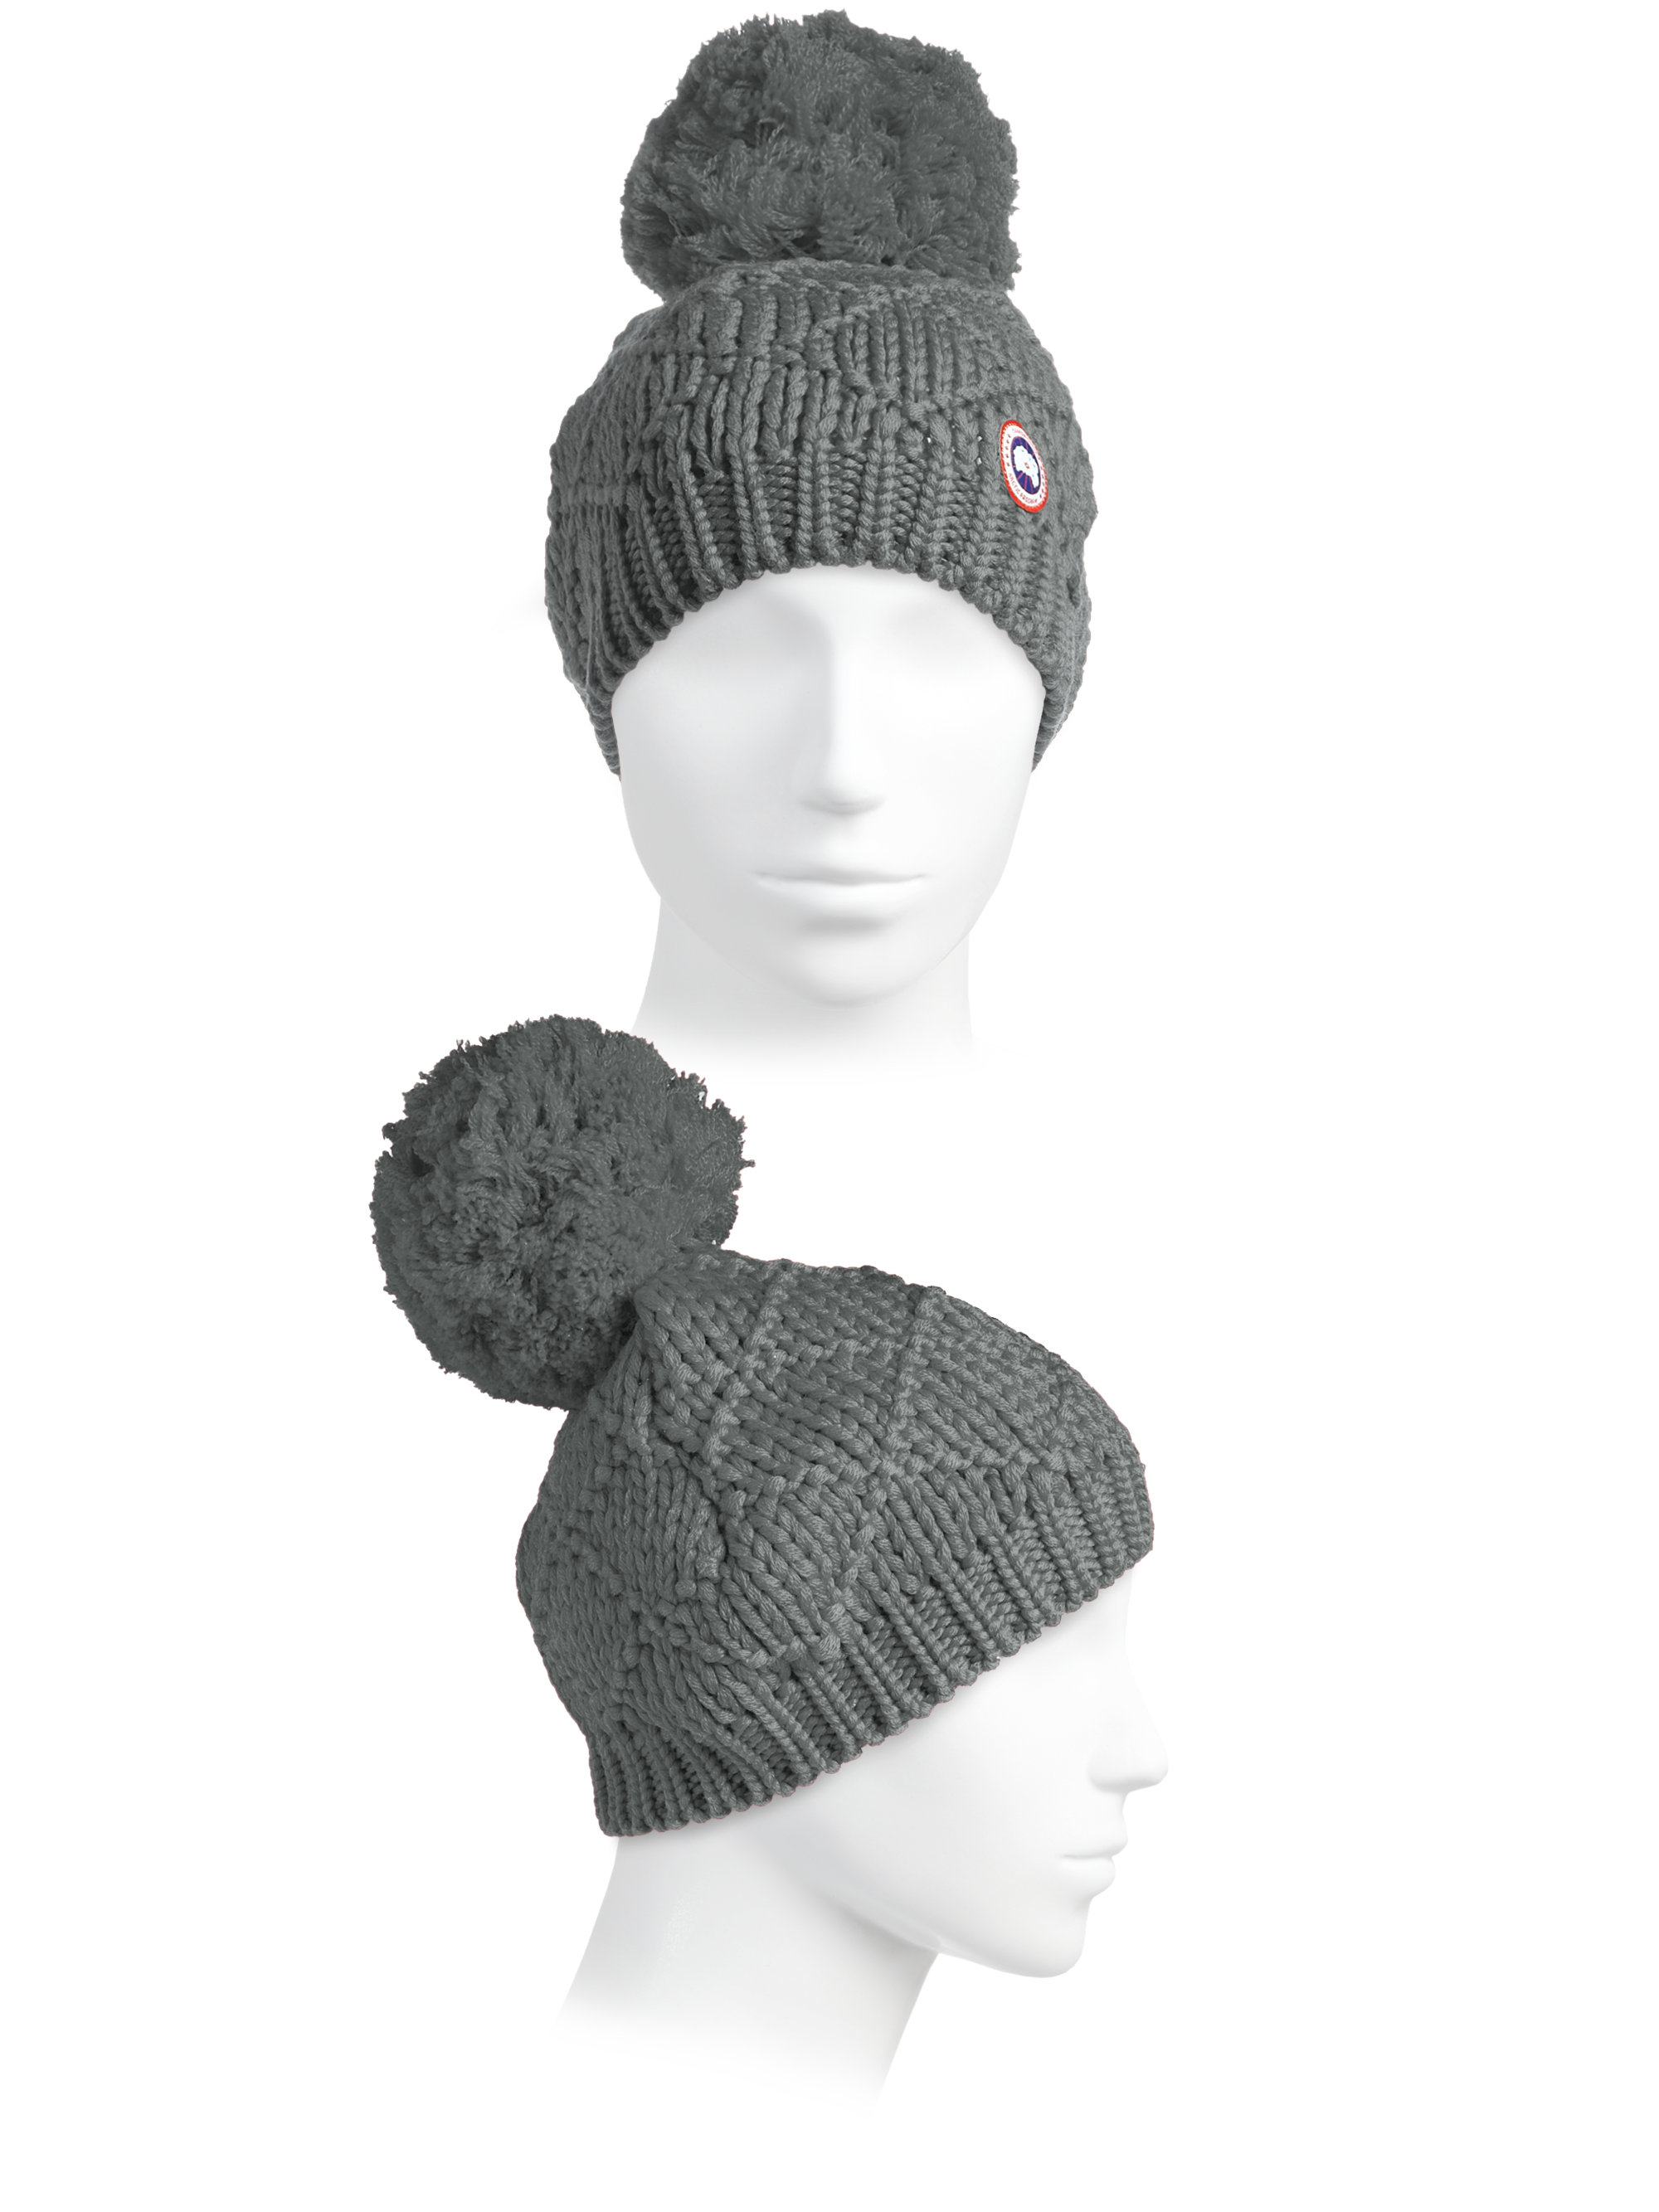 Lyst - Canada Goose Oversized Pom-pom Hat in Gray 62f55db4a9